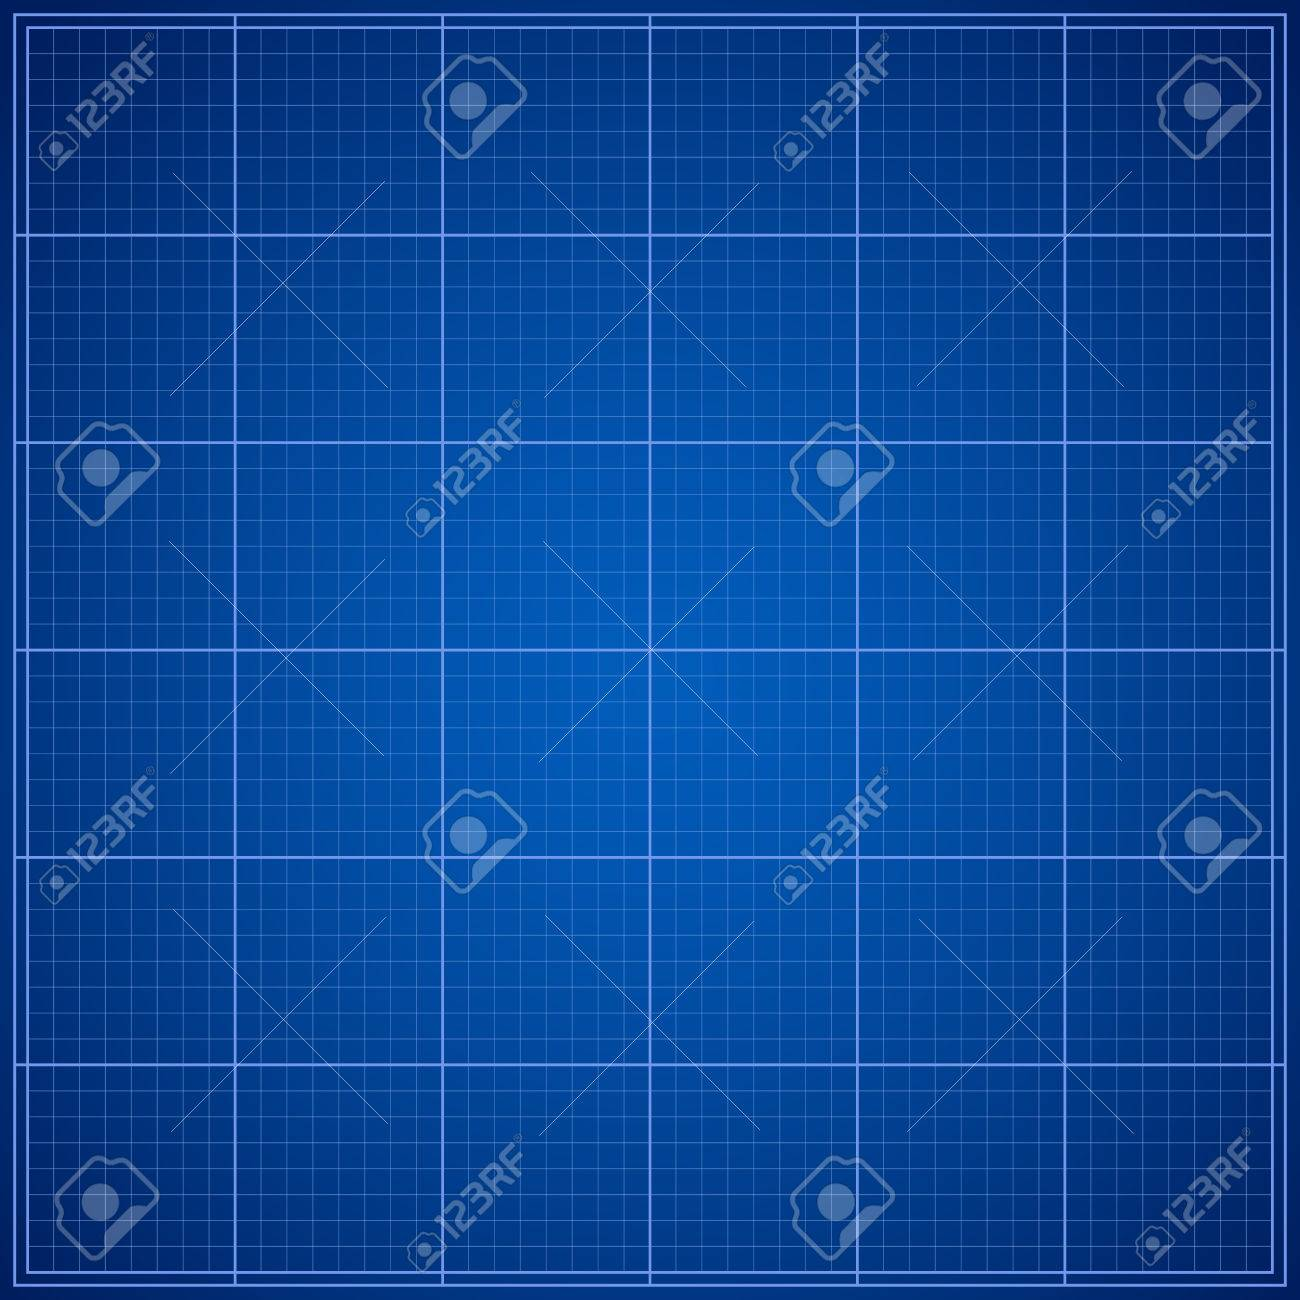 Blue blueprint background texture paper royalty free cliparts blue blueprint background texture paper stock vector 50960152 malvernweather Gallery